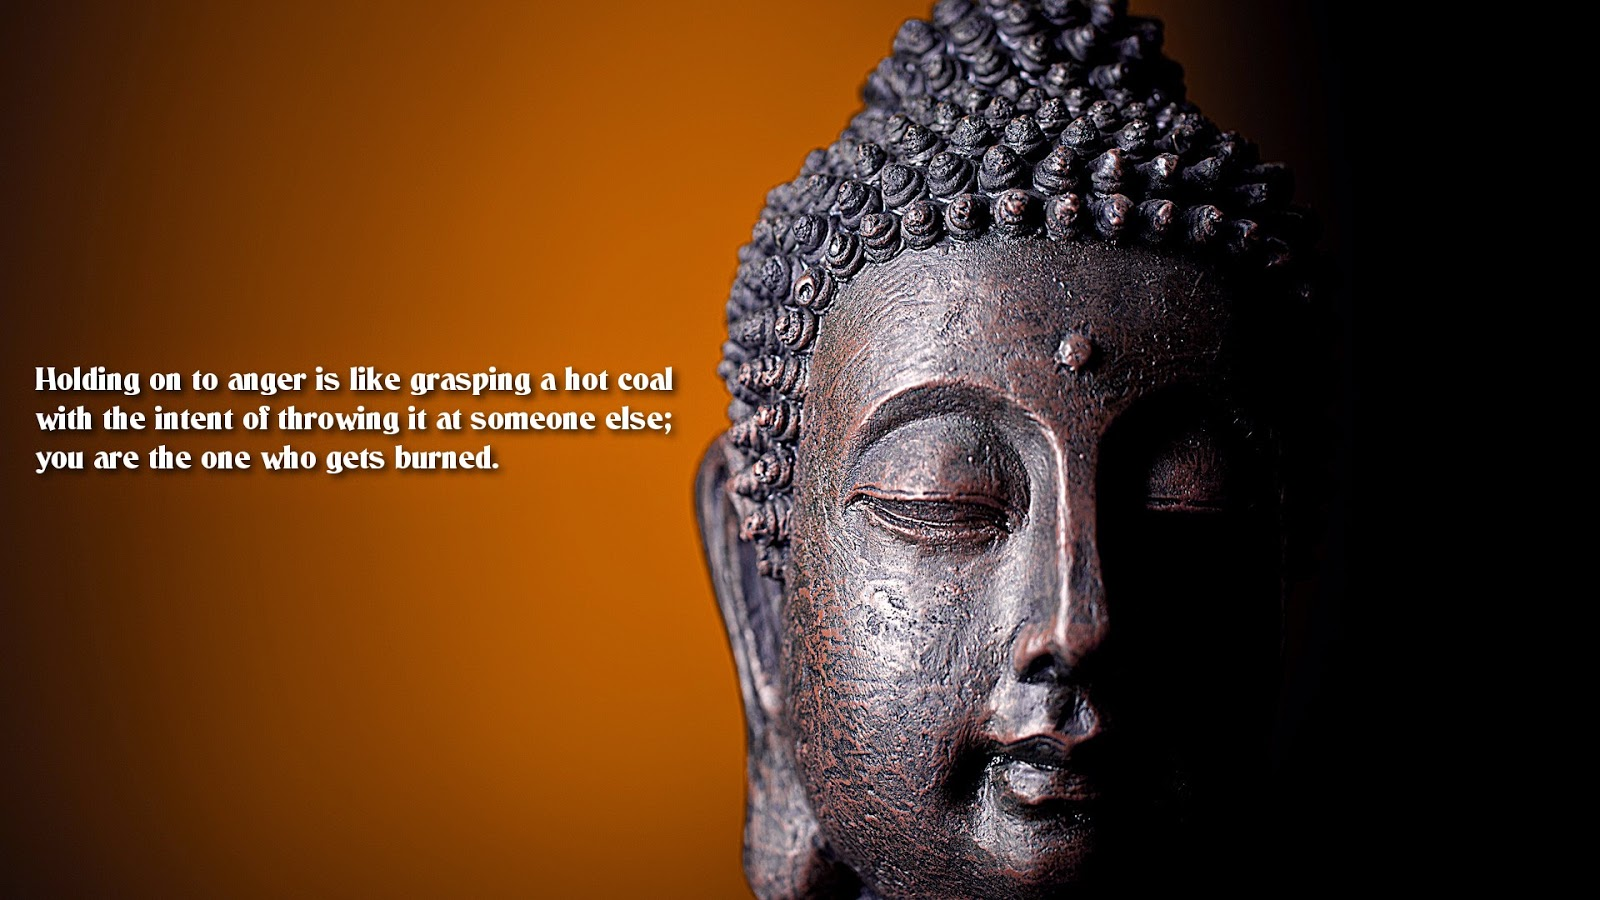 buddha wallpapers with quotes on life and happiness hd